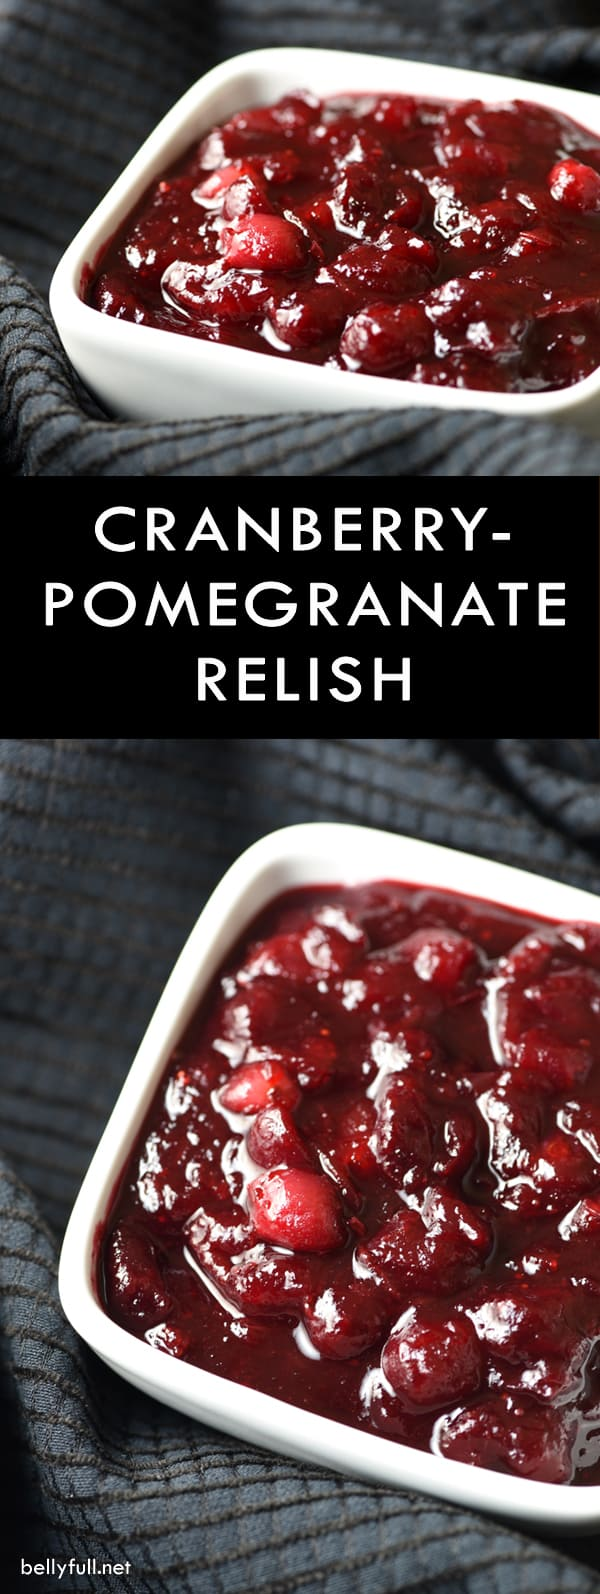 A delicious twist on classic cranberry sauce bursting with flavor!